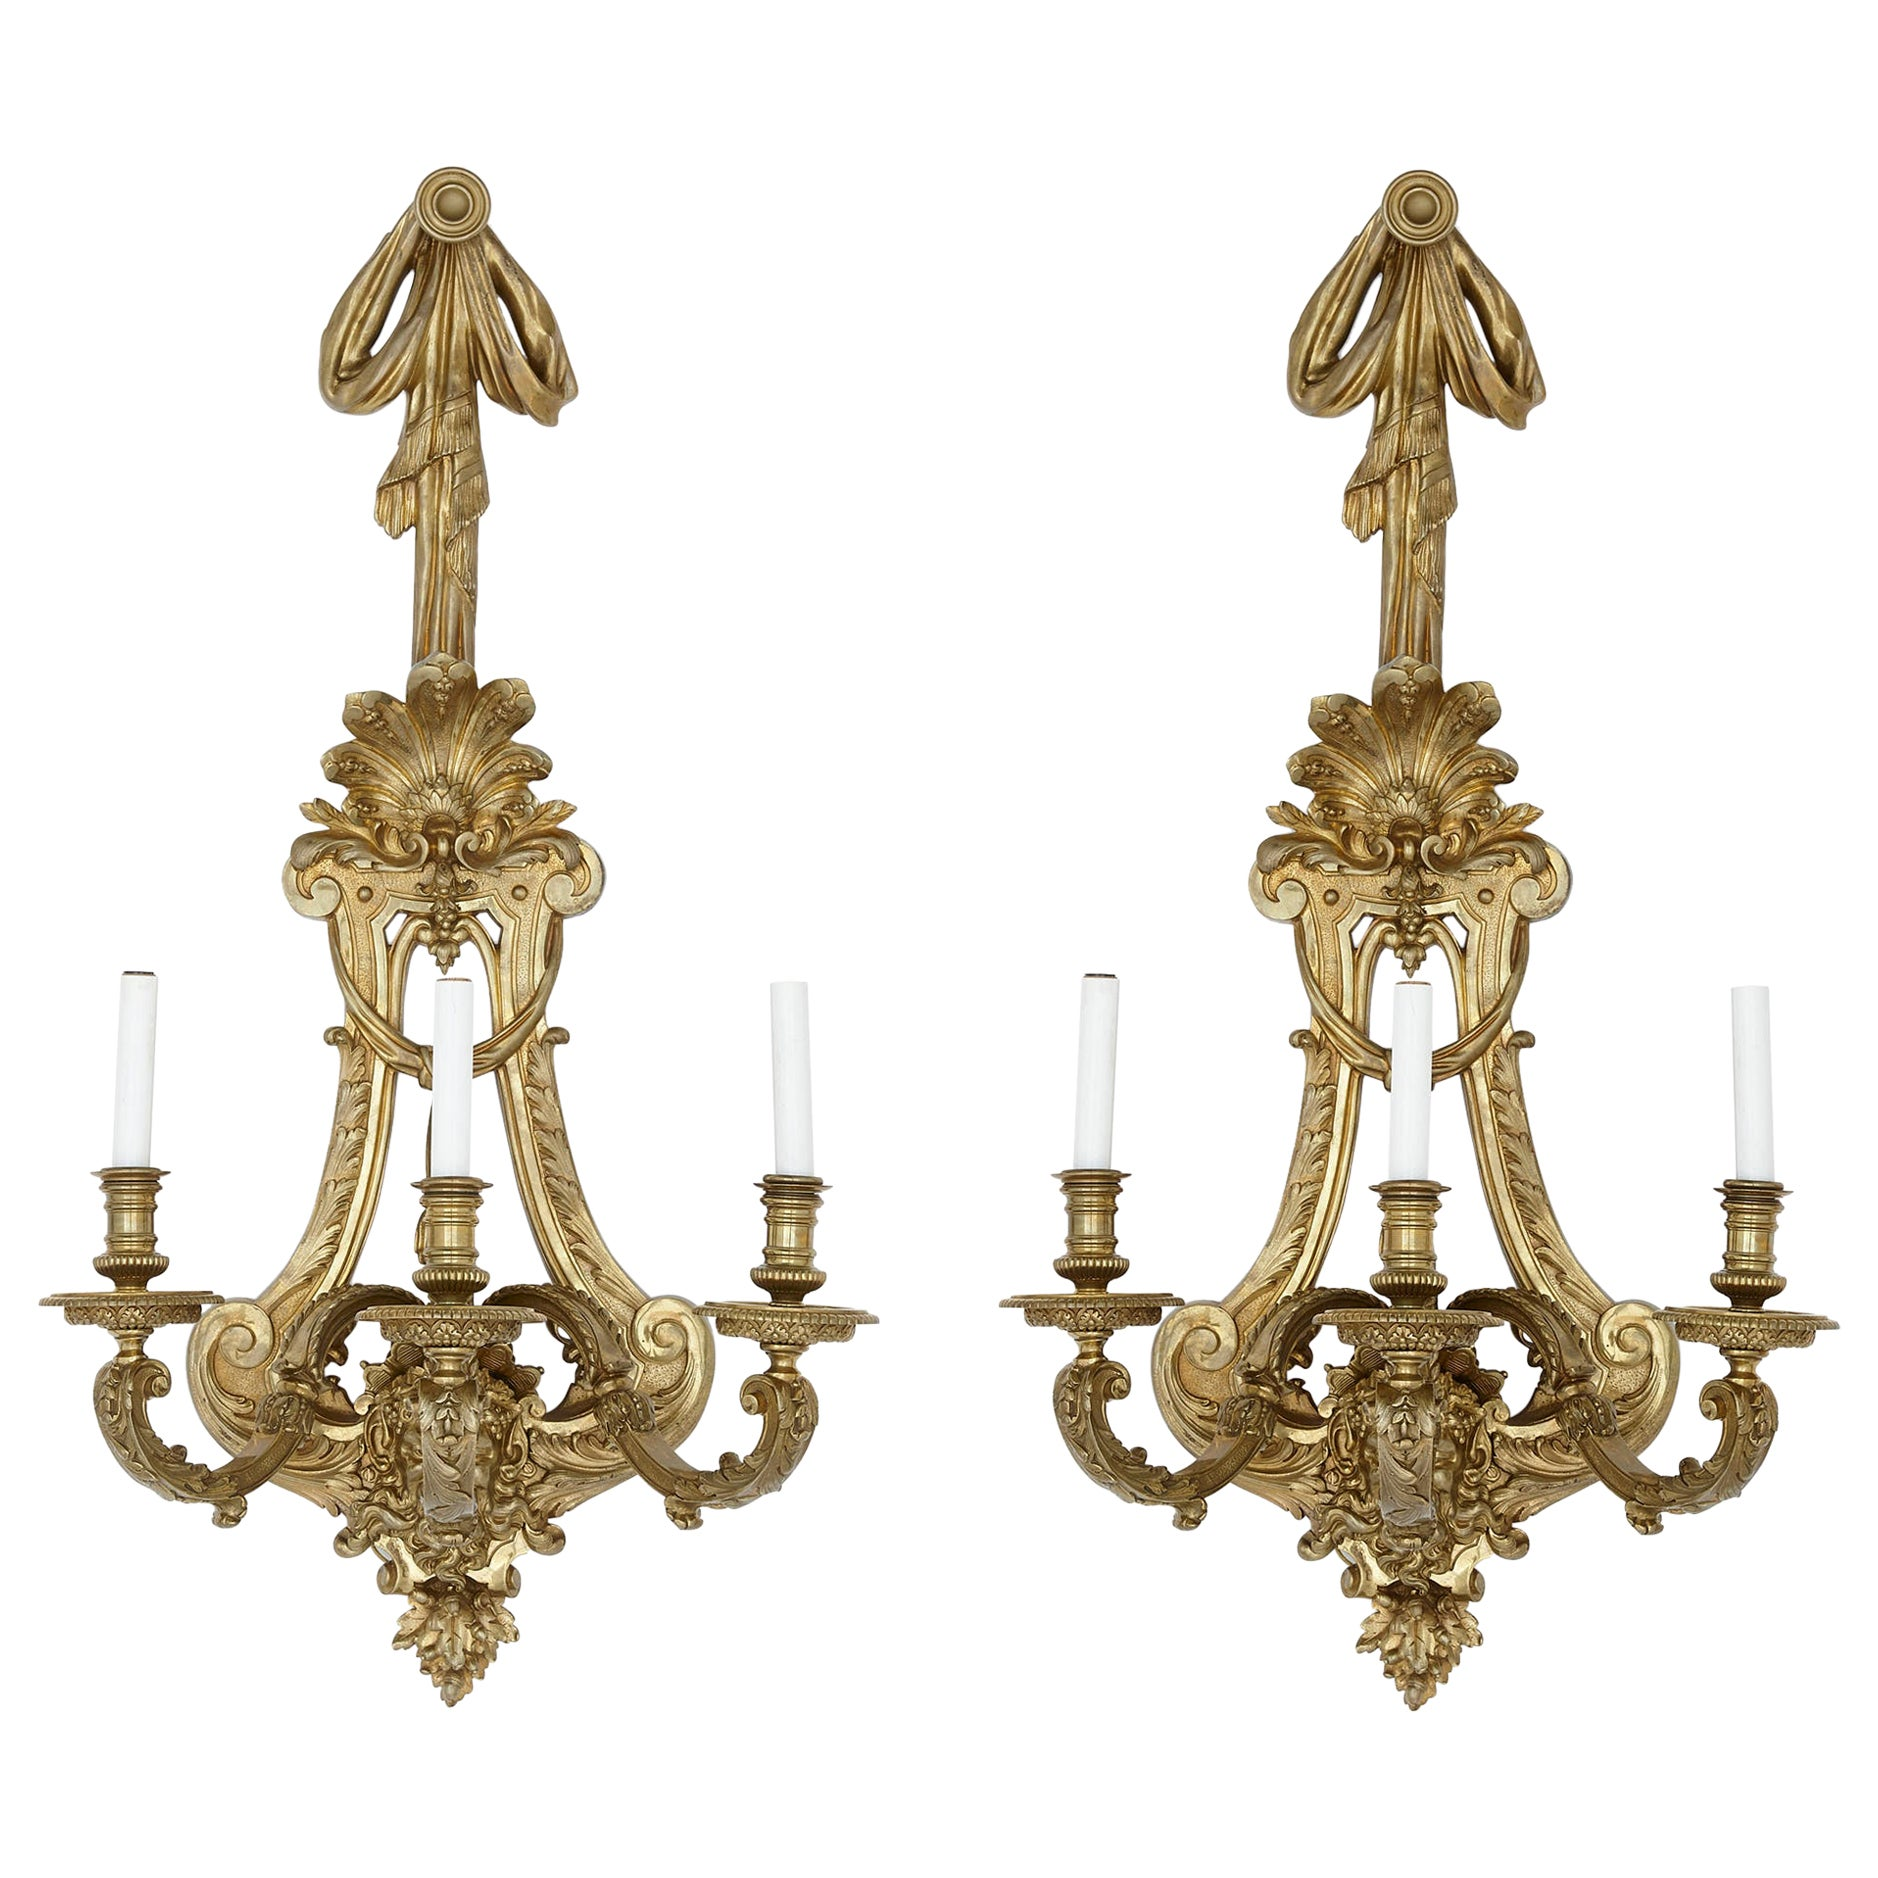 Two Large French Ormolu Three-Branch Wall Sconces by H. Vian